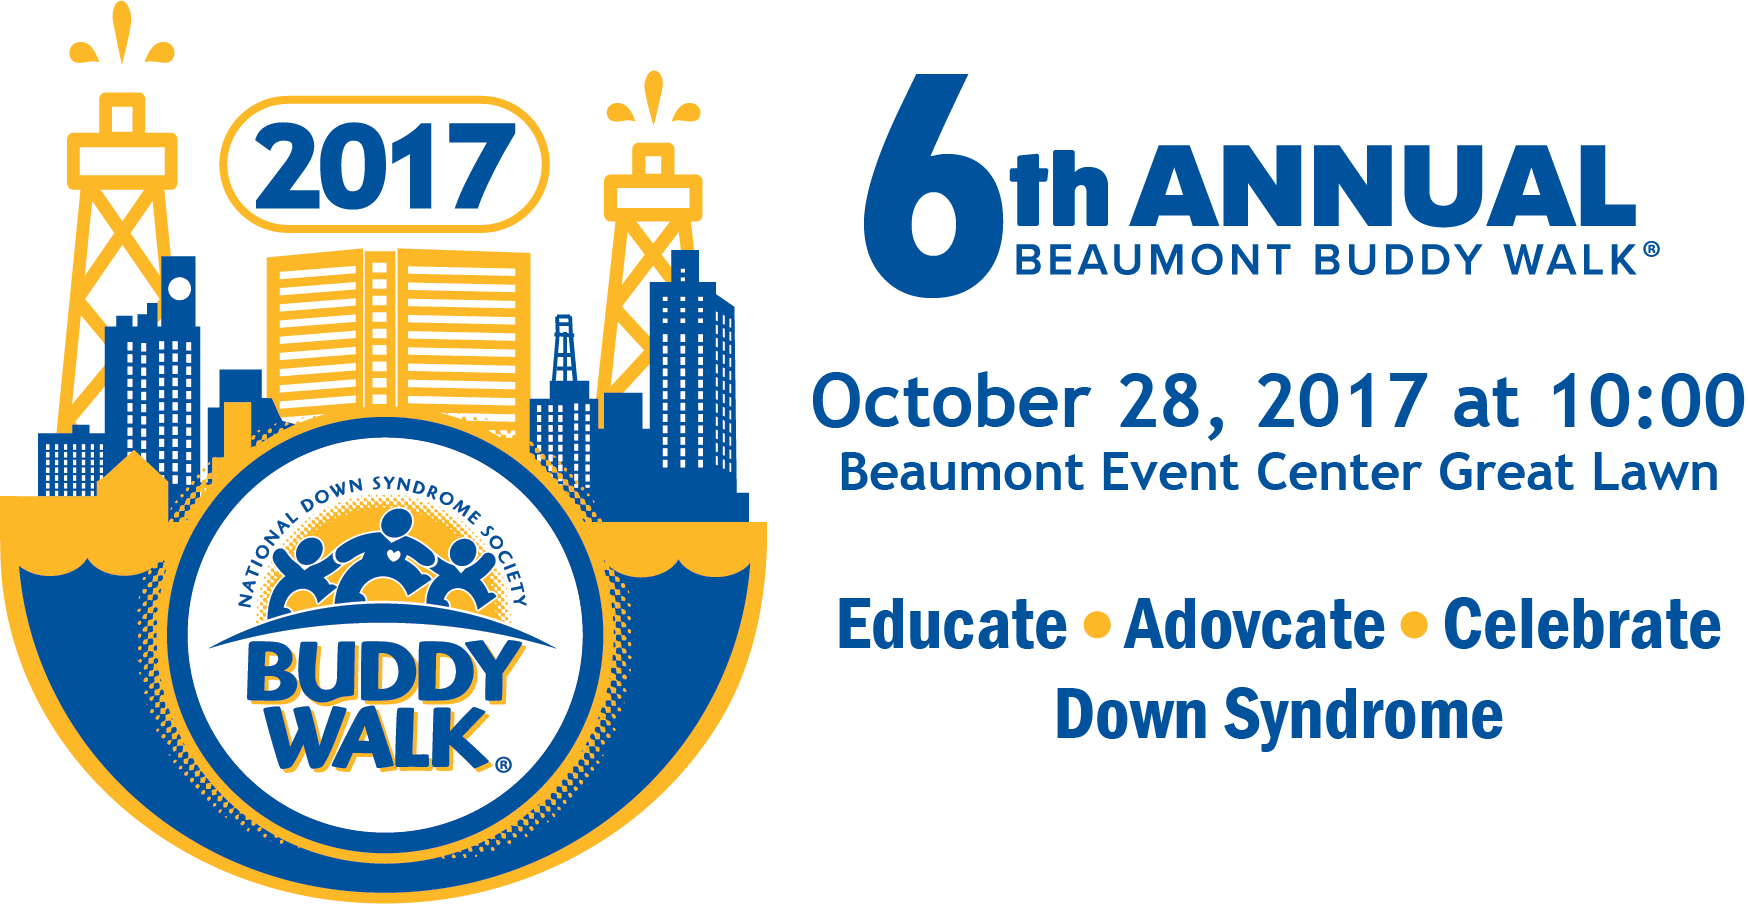 6th Annual Beaumont Buddy Walk October 28, 2017